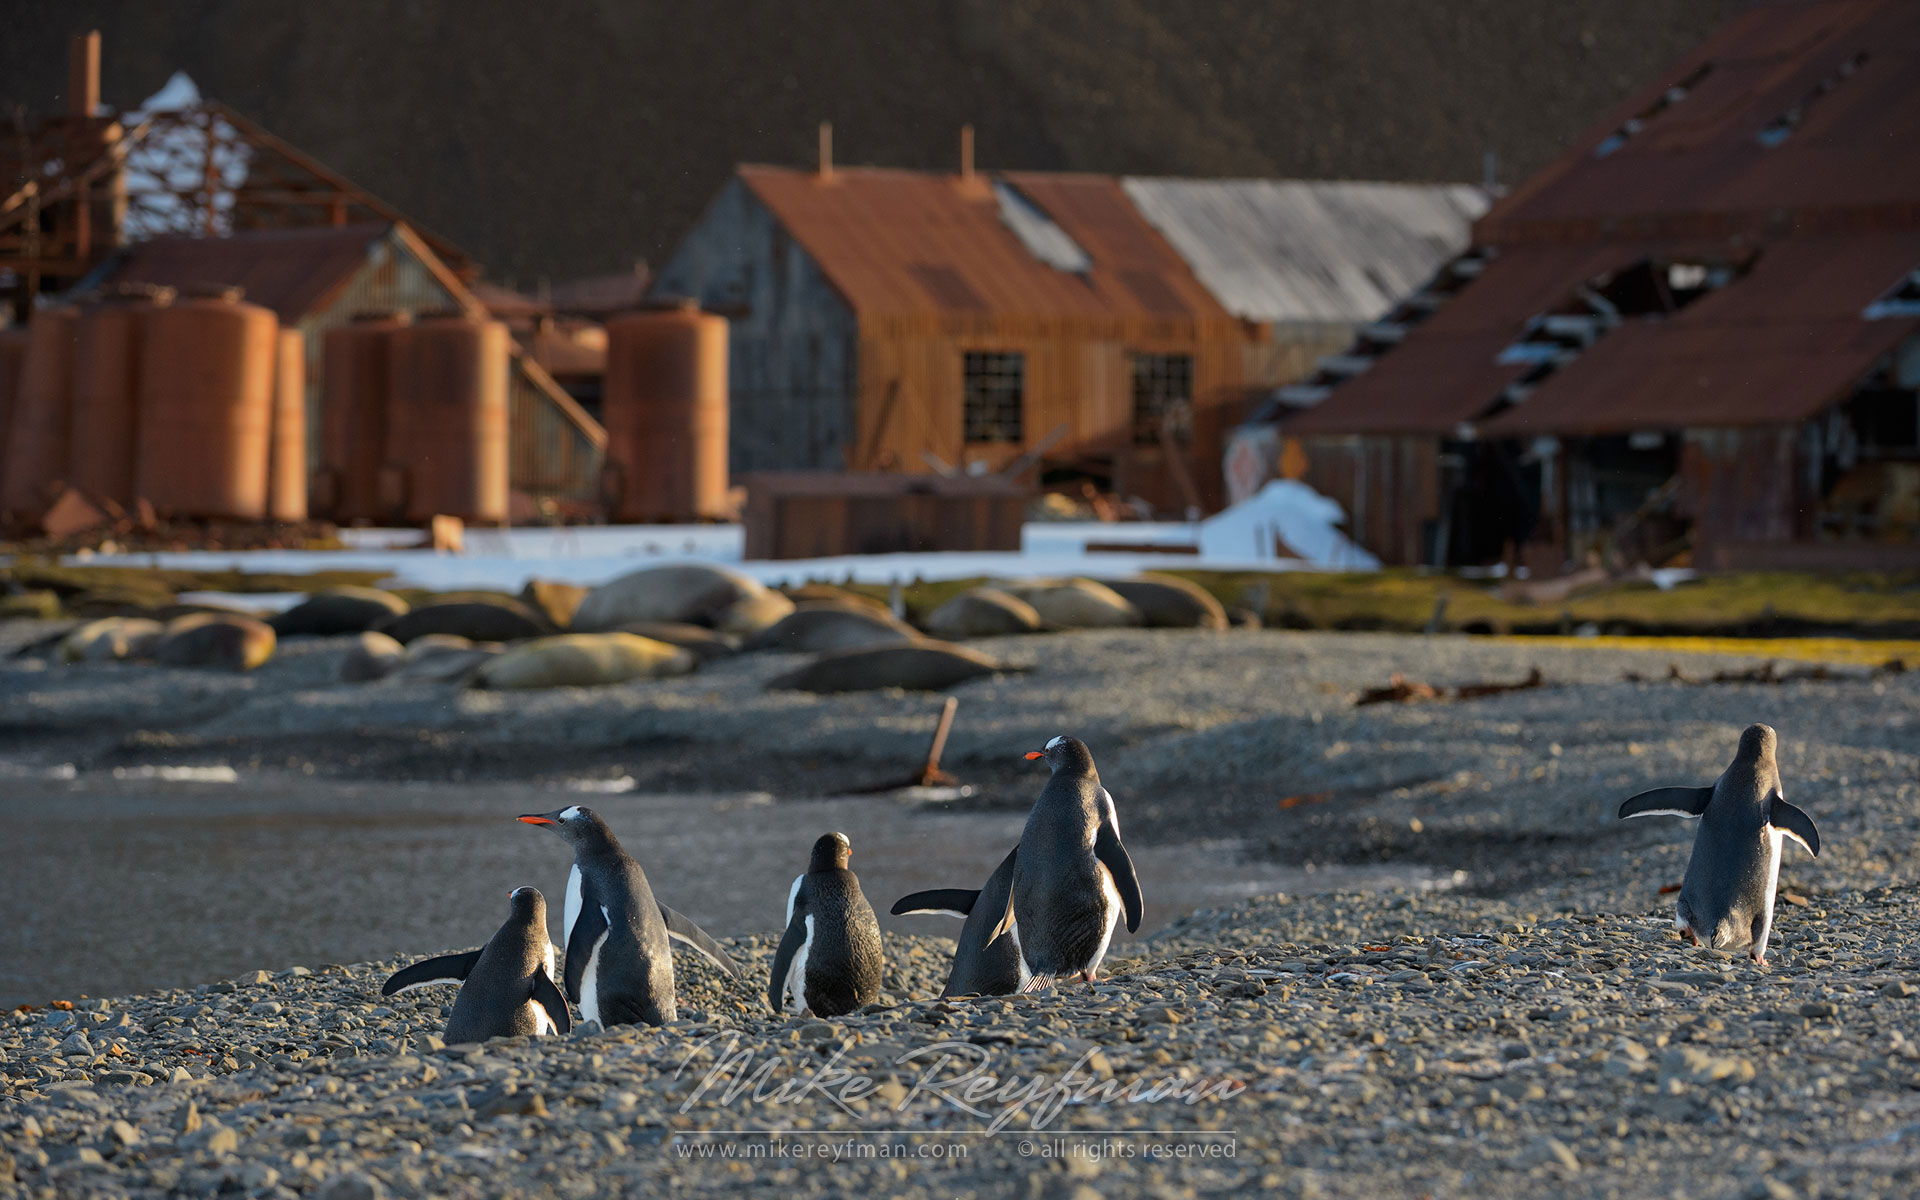 Group of Gentoo Penguins (Pygoscelis papua) walking toward abandoned whaling station. Stromness Bay, South Georgia, Sub-Antarctic - King-Penguins-South-Georgia-Sub-Antarctic - Mike Reyfman Photography